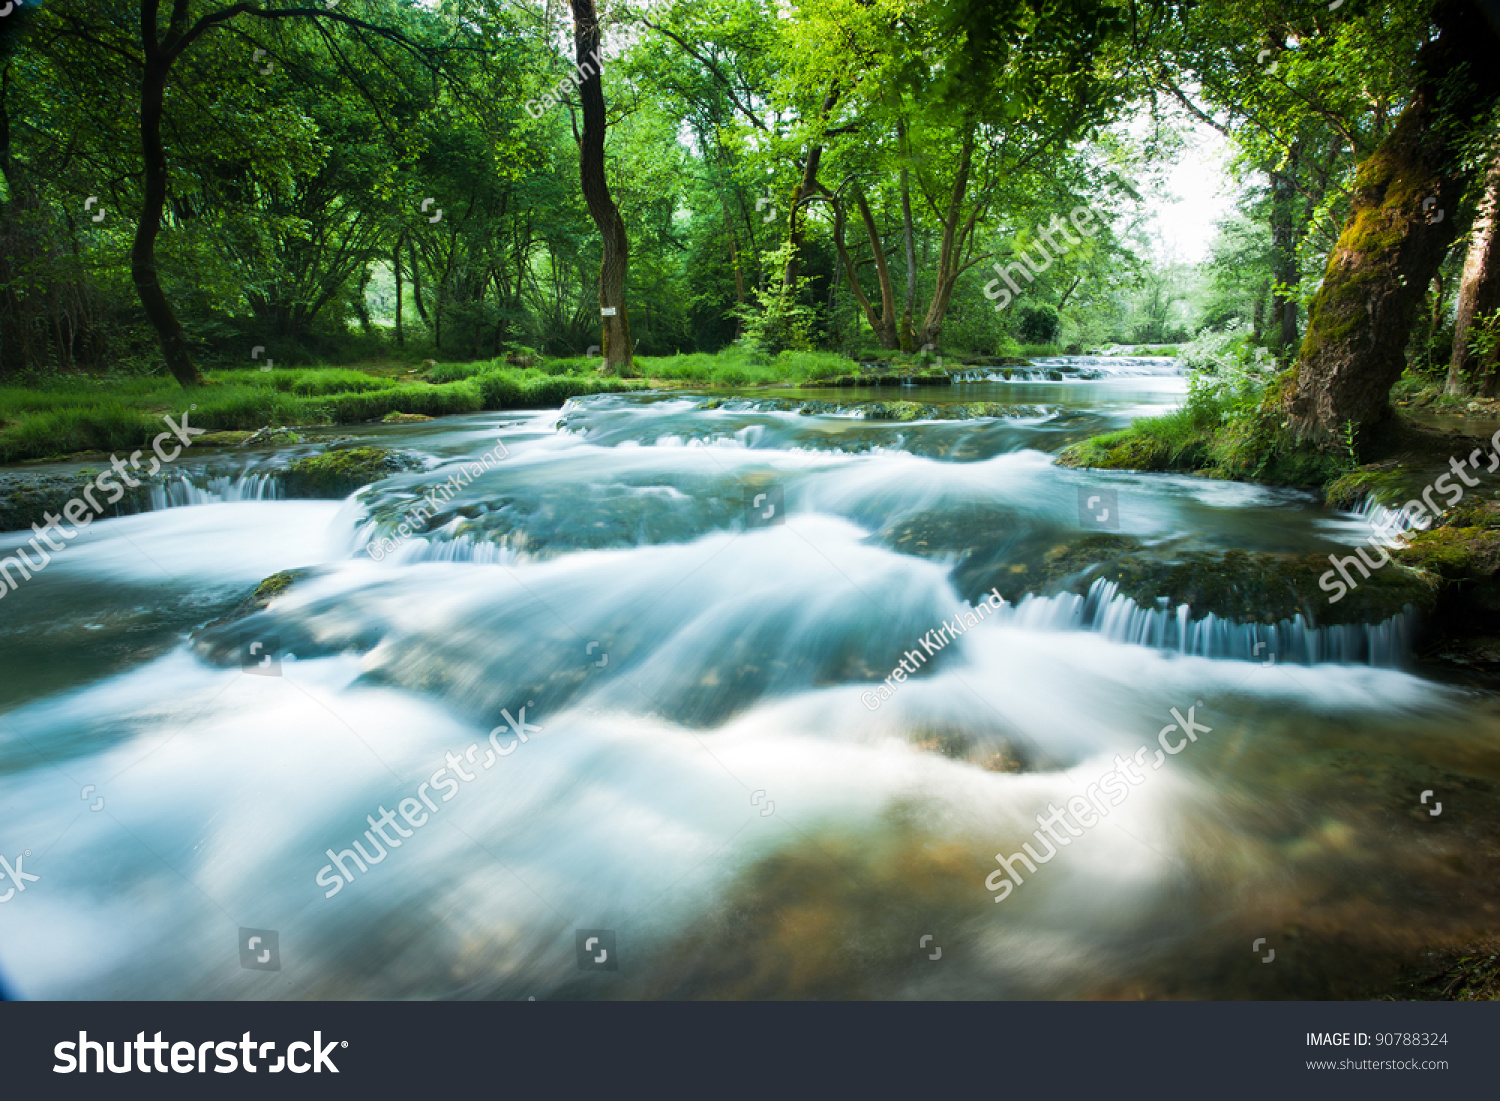 Fast Flowing Stream Le Ceou Castlenaud Stock Photo ...